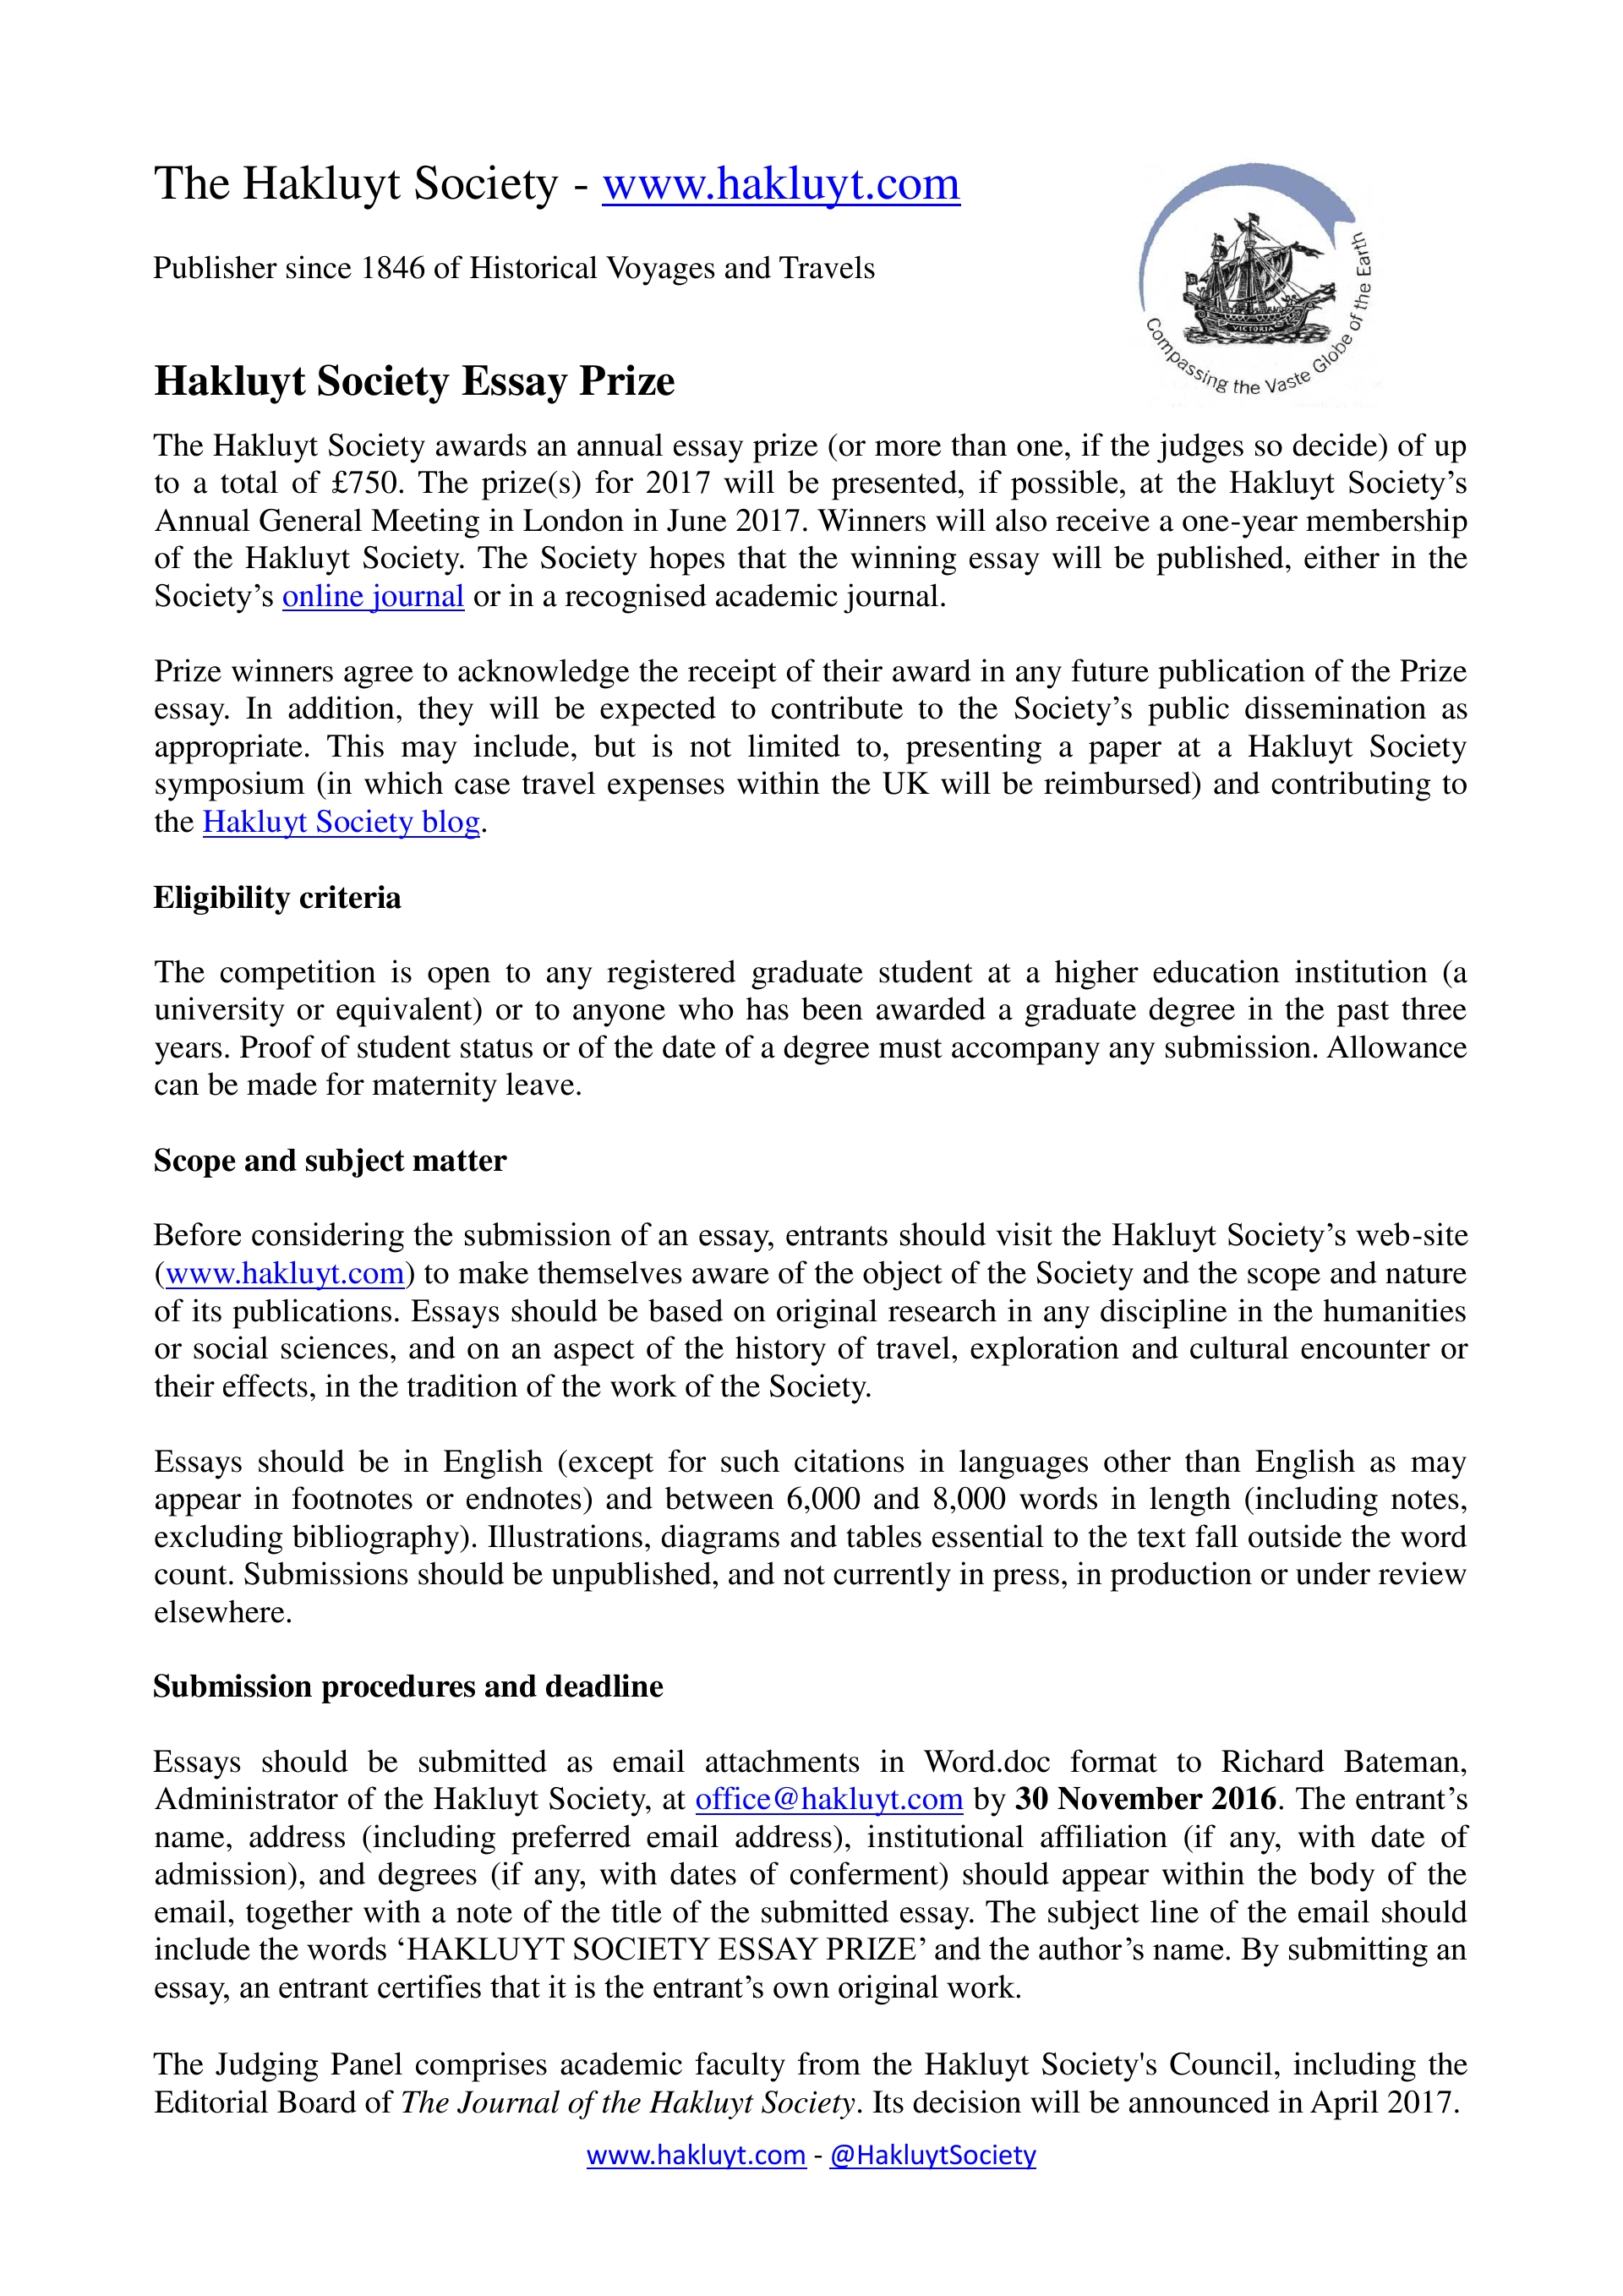 017 Travel Essay Hakluyt Society Prize The Example Text Journal Sample Tagalog Photo Examples Experience Pdf Writing Unique Definition Submissions